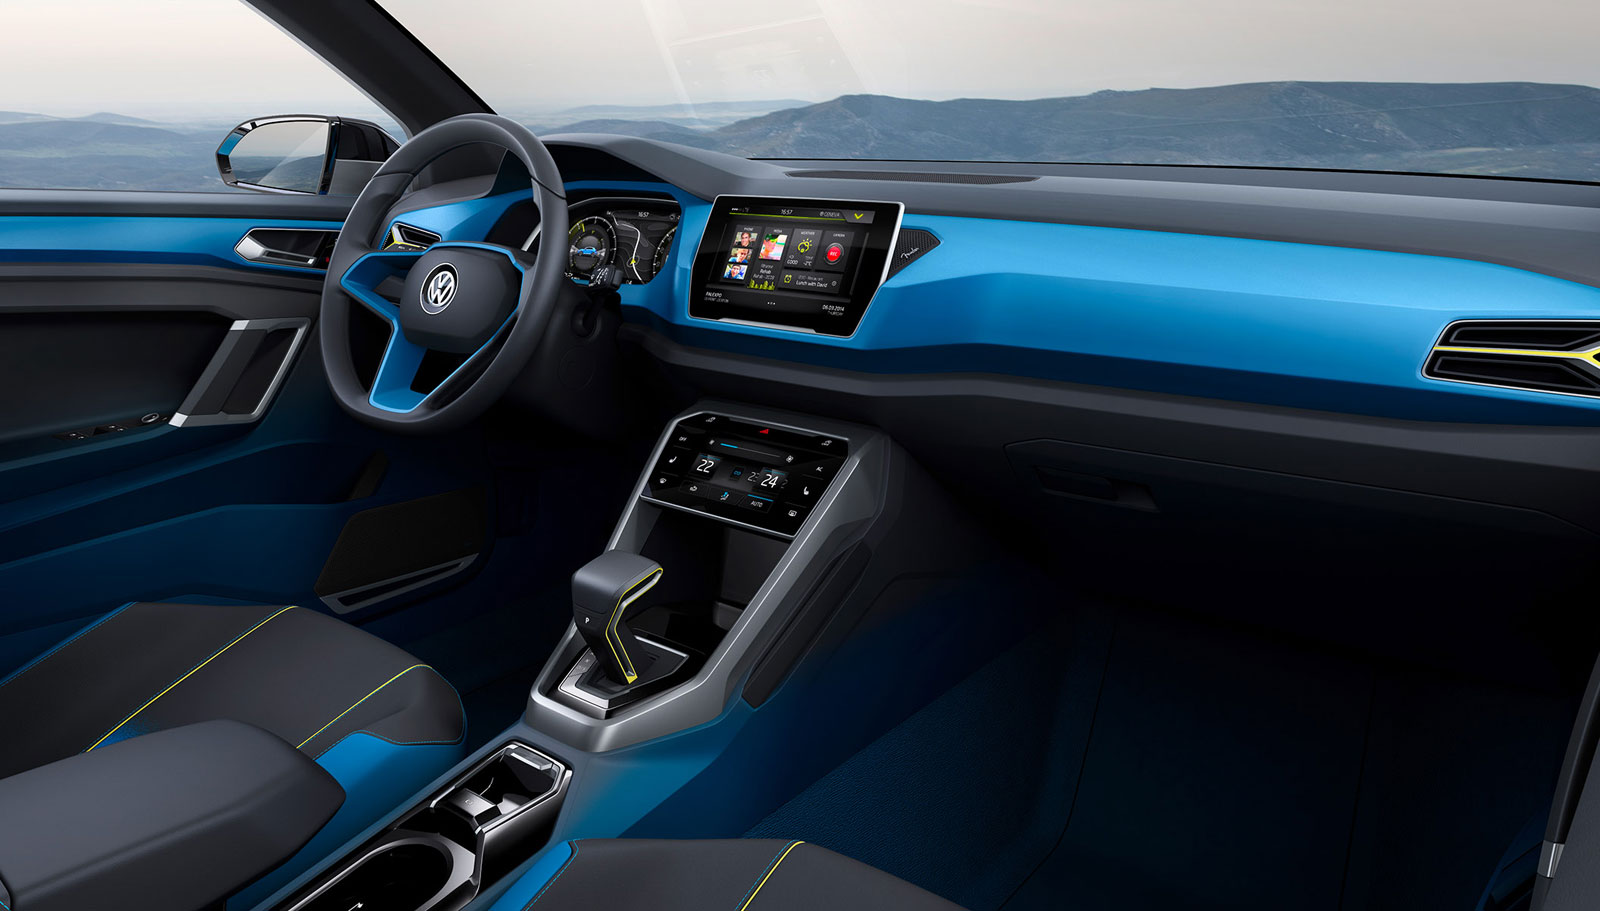 Custom Car Interior Design Software Bioraf